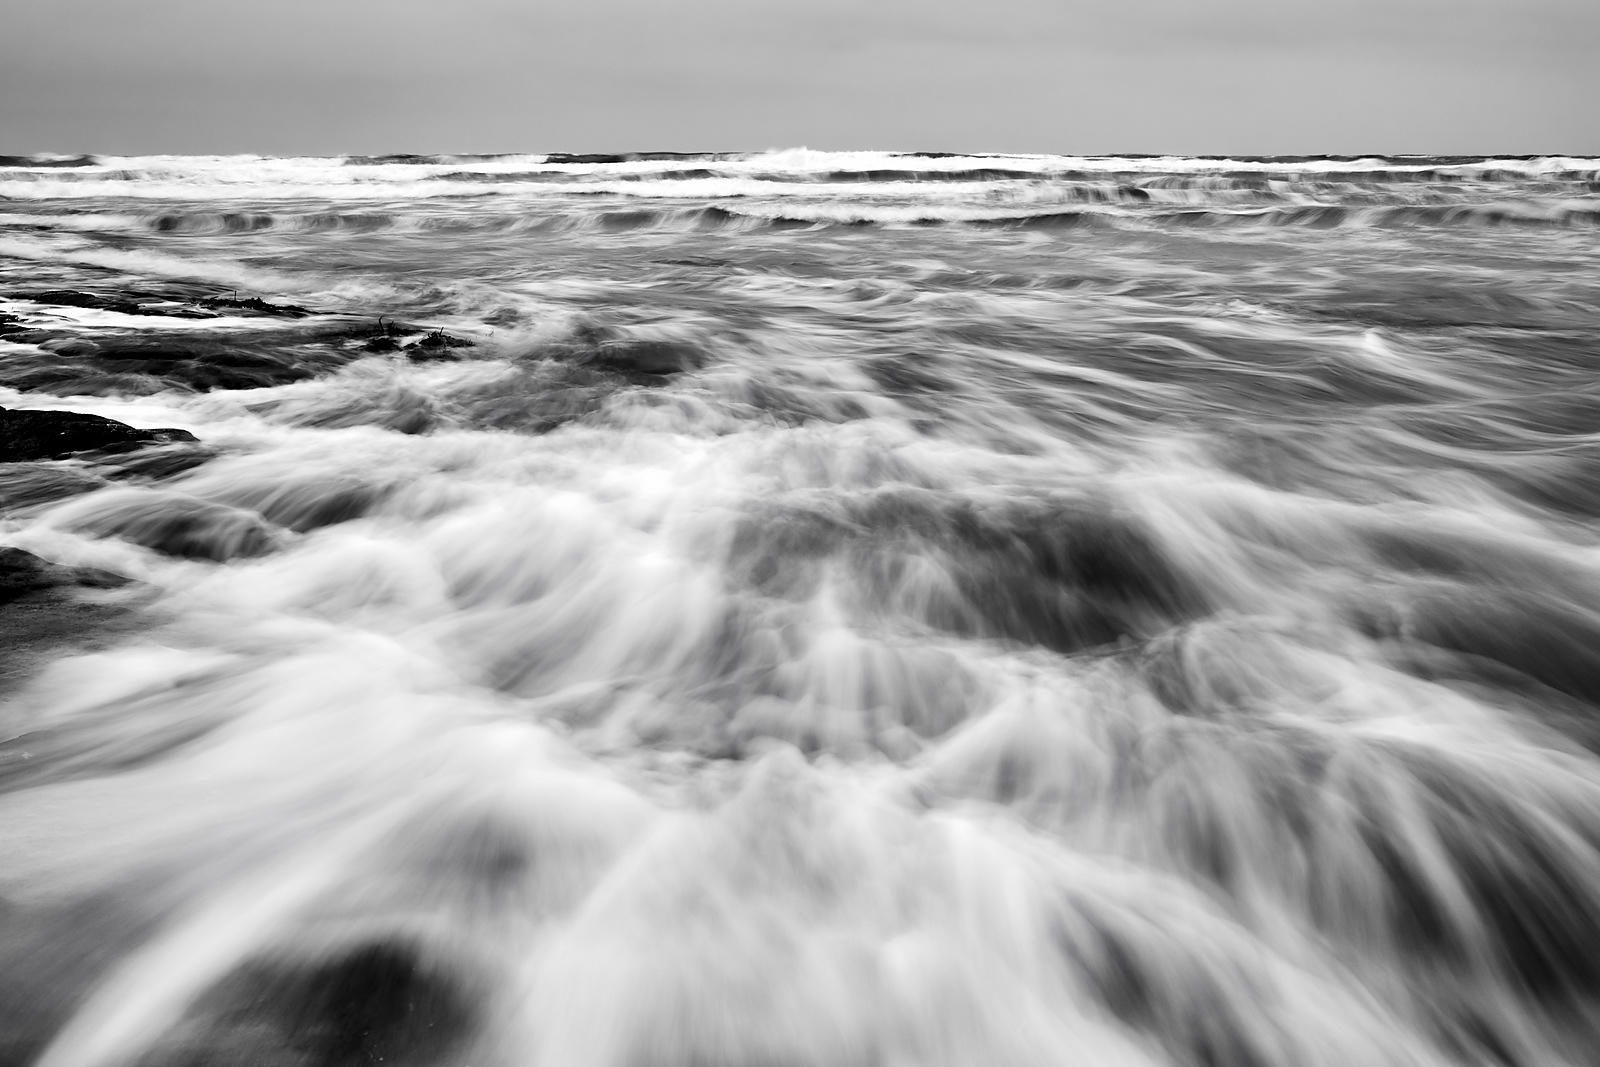 Soft waves over the rocks in black and white